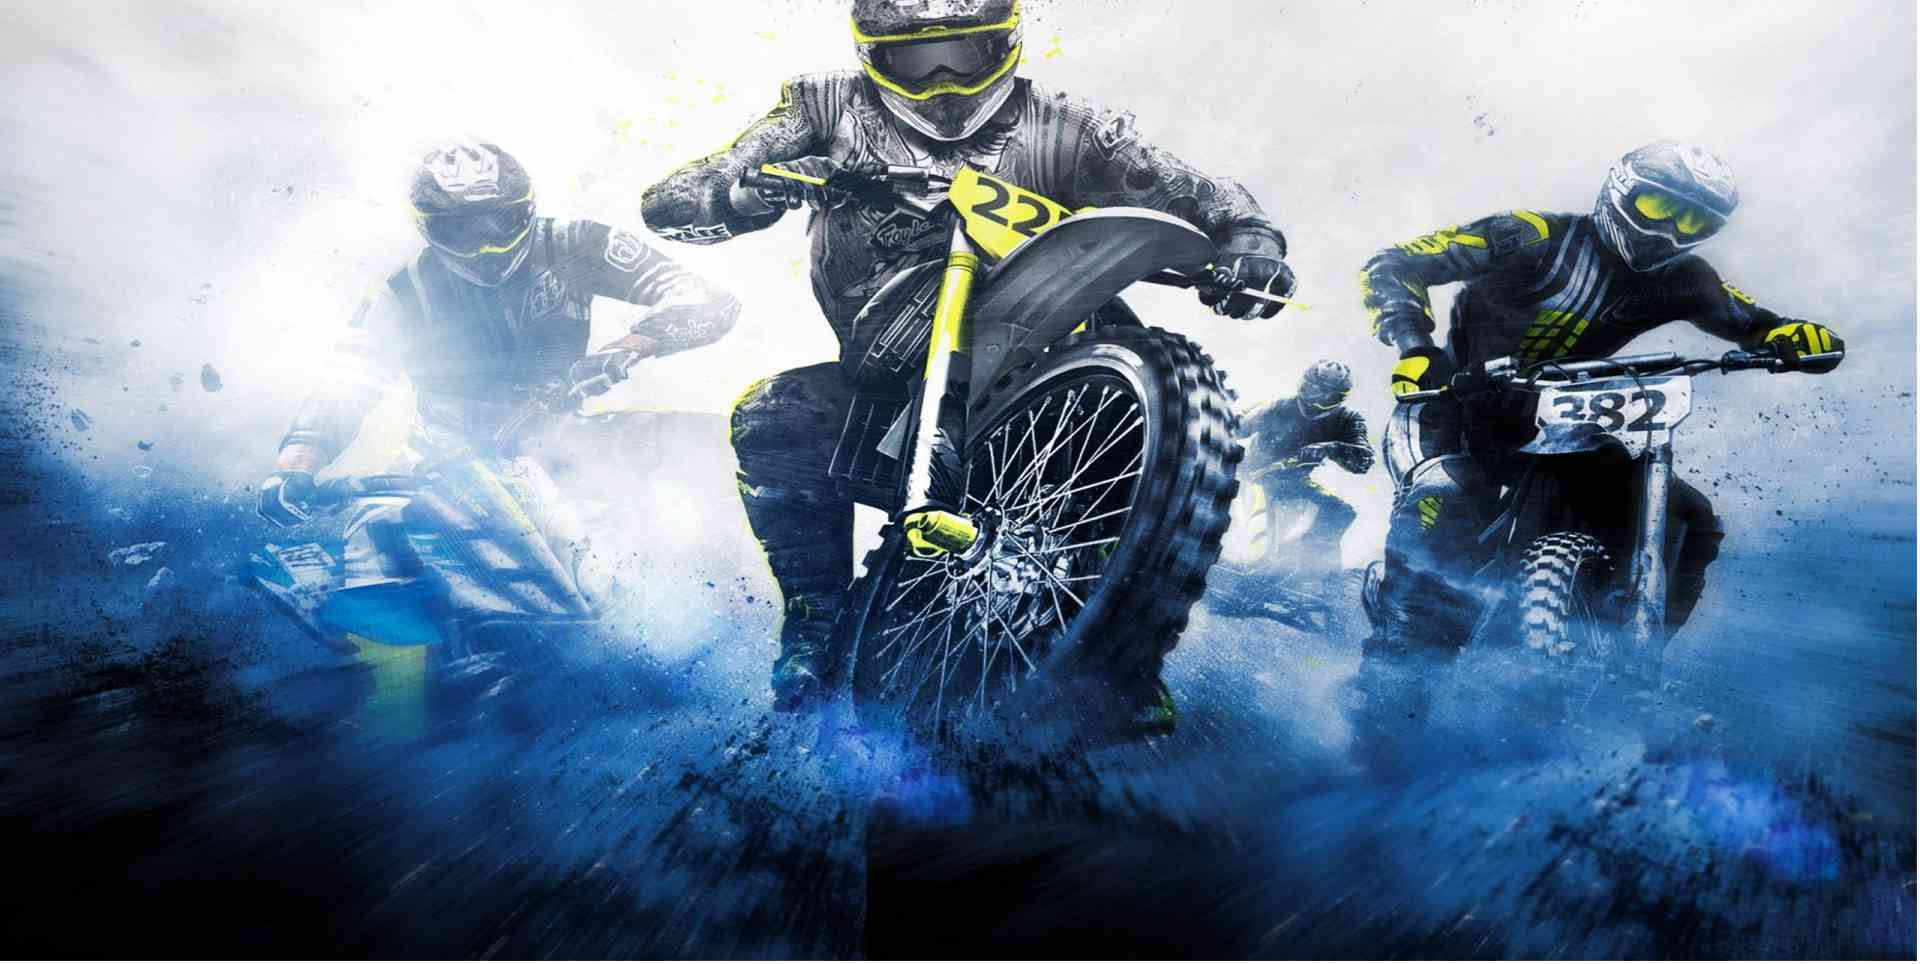 Watch Ironman National Motocross Live